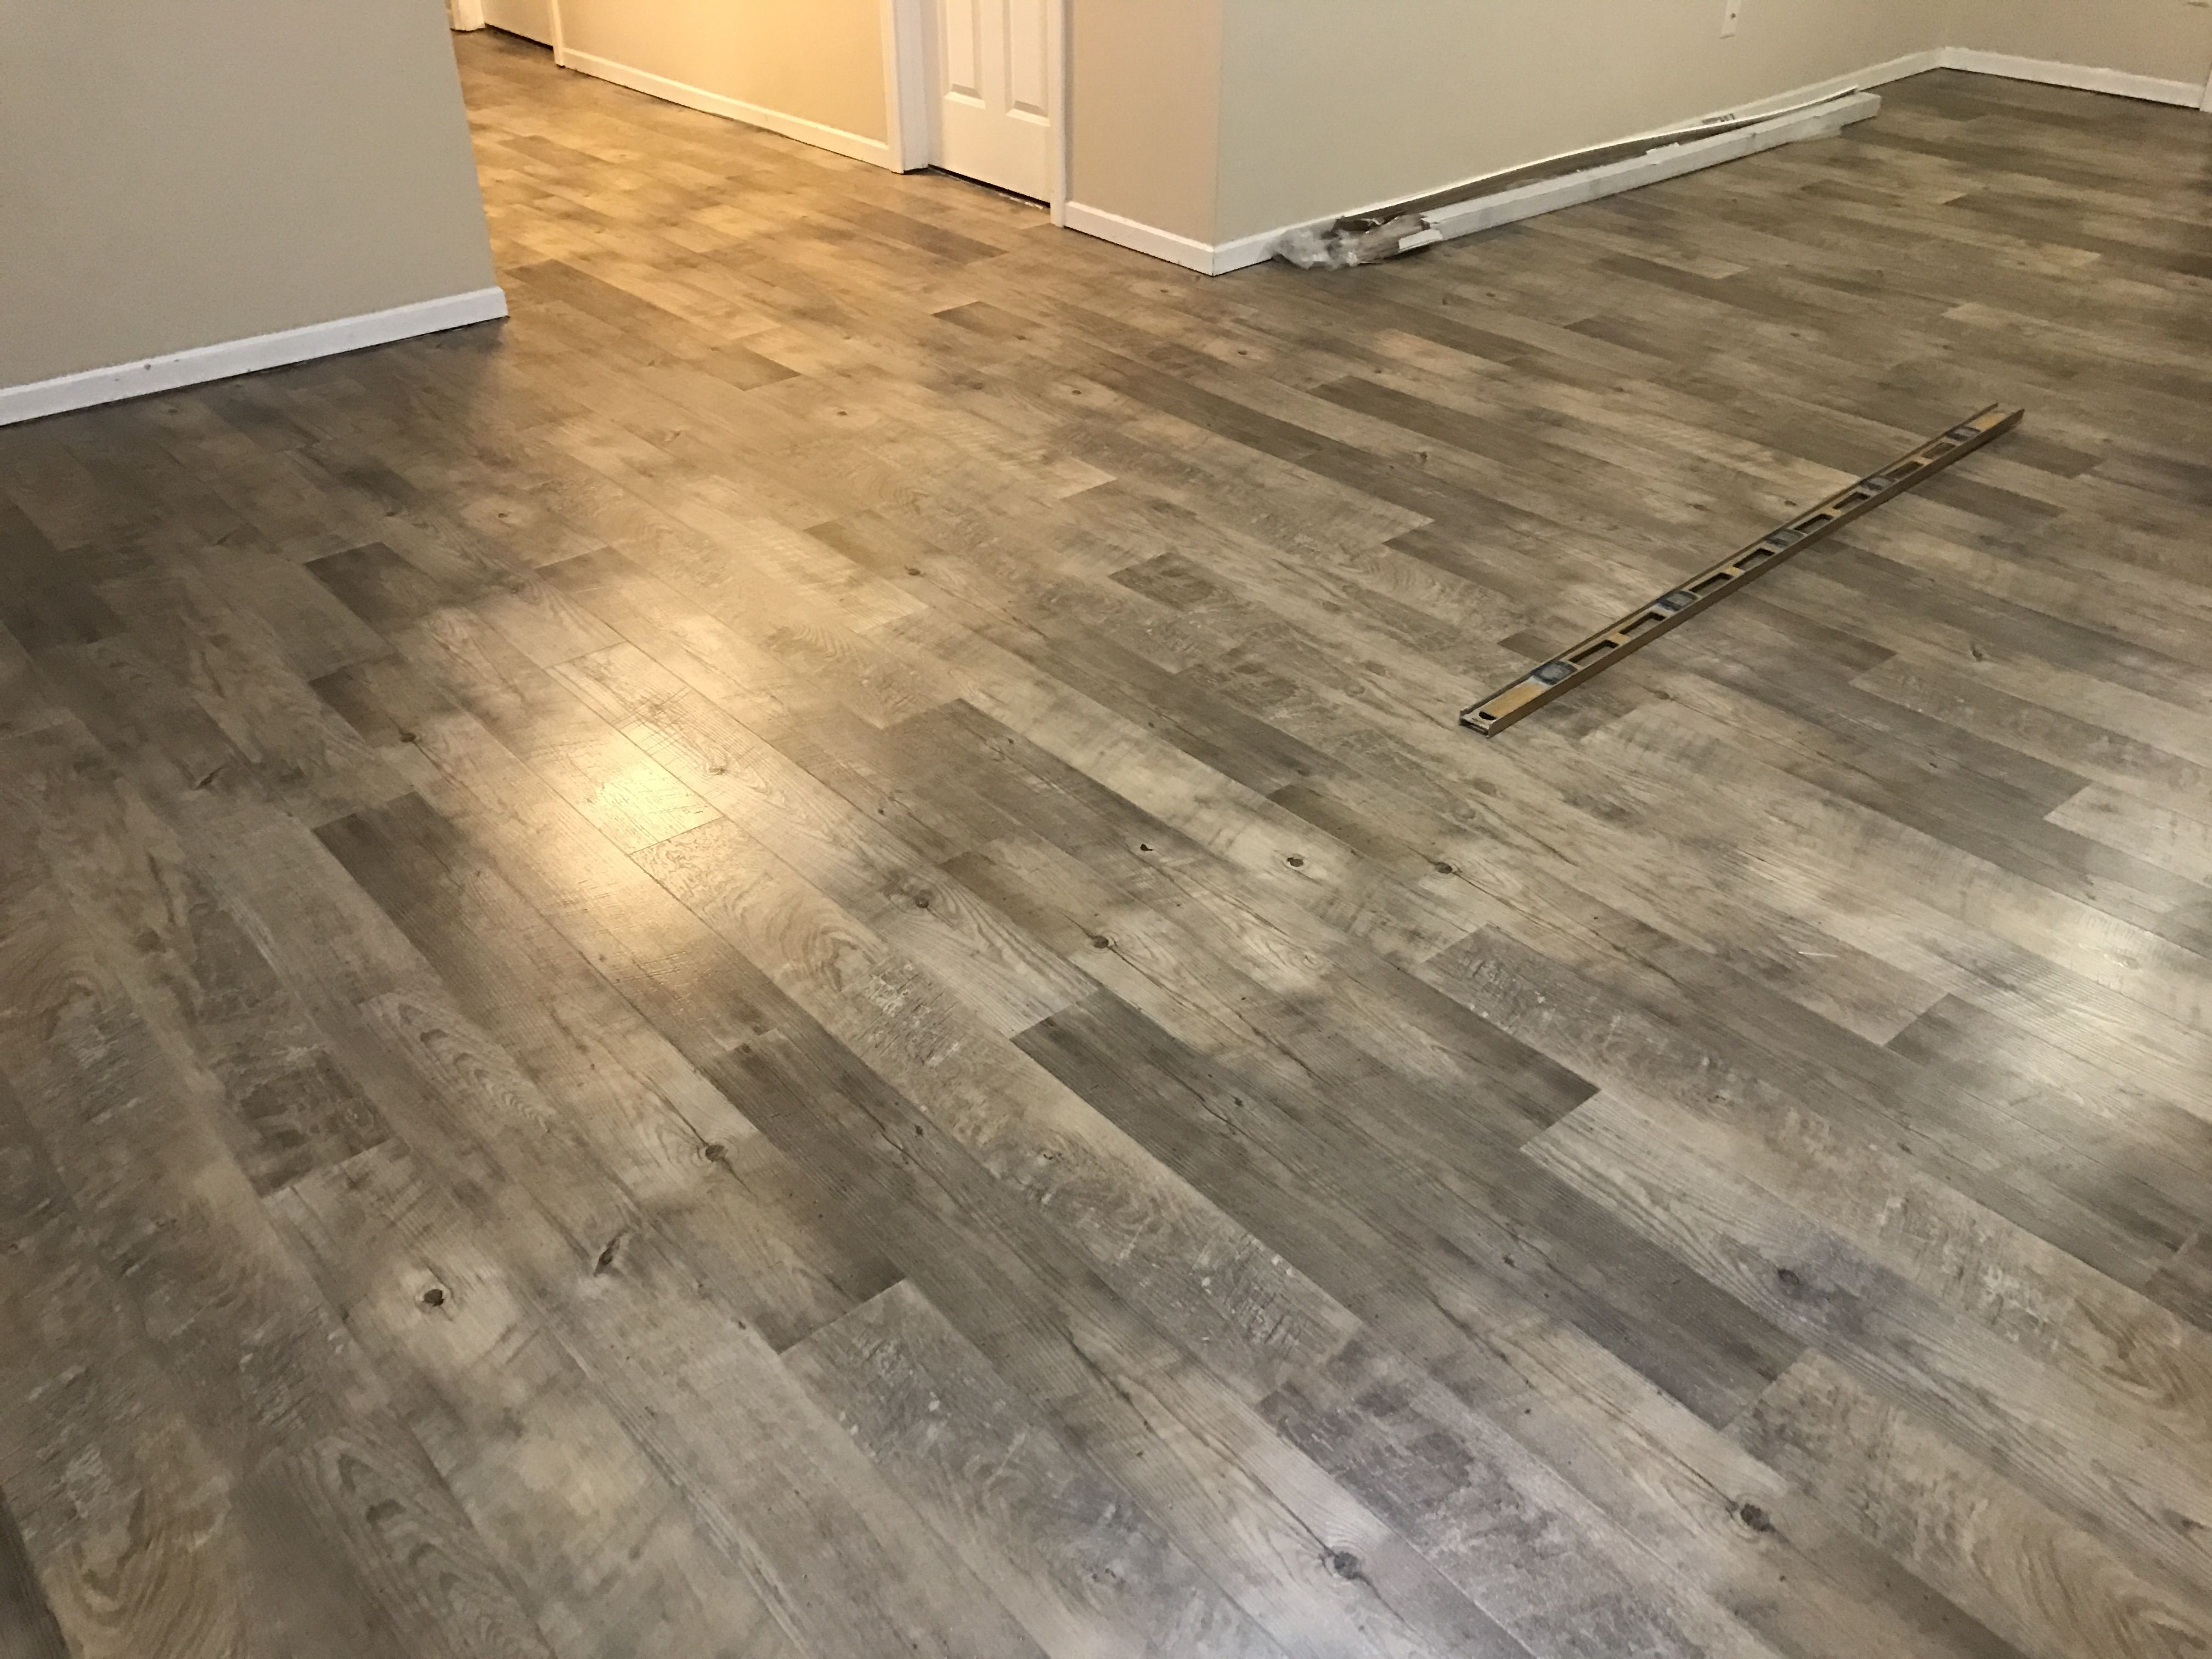 27 stunning dark hardwood floors pros and cons unique - Pros and cons of hardwood flooring ...